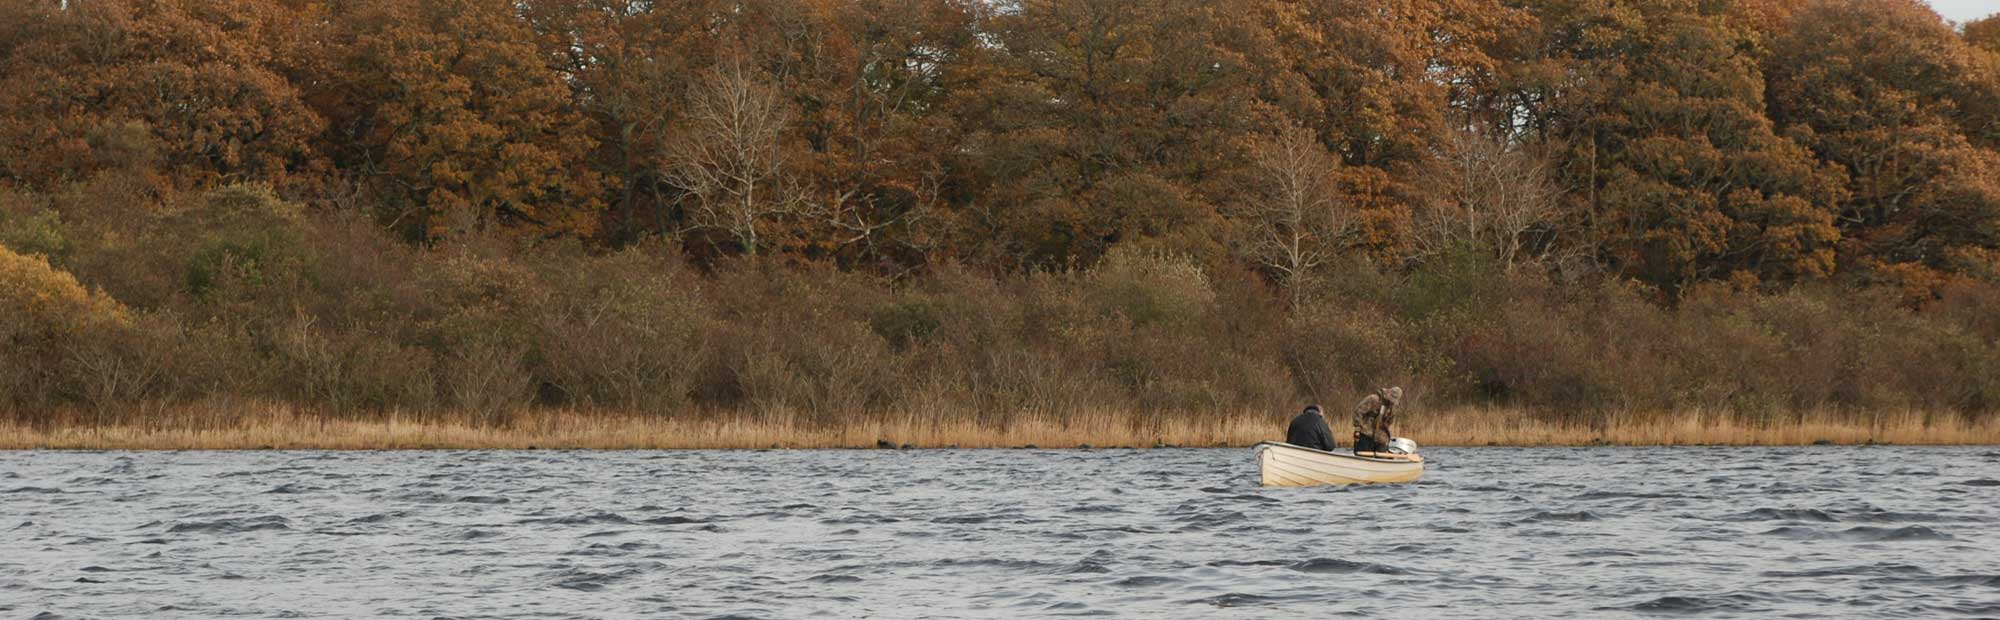 slider-fishing-guide-lough-erne1